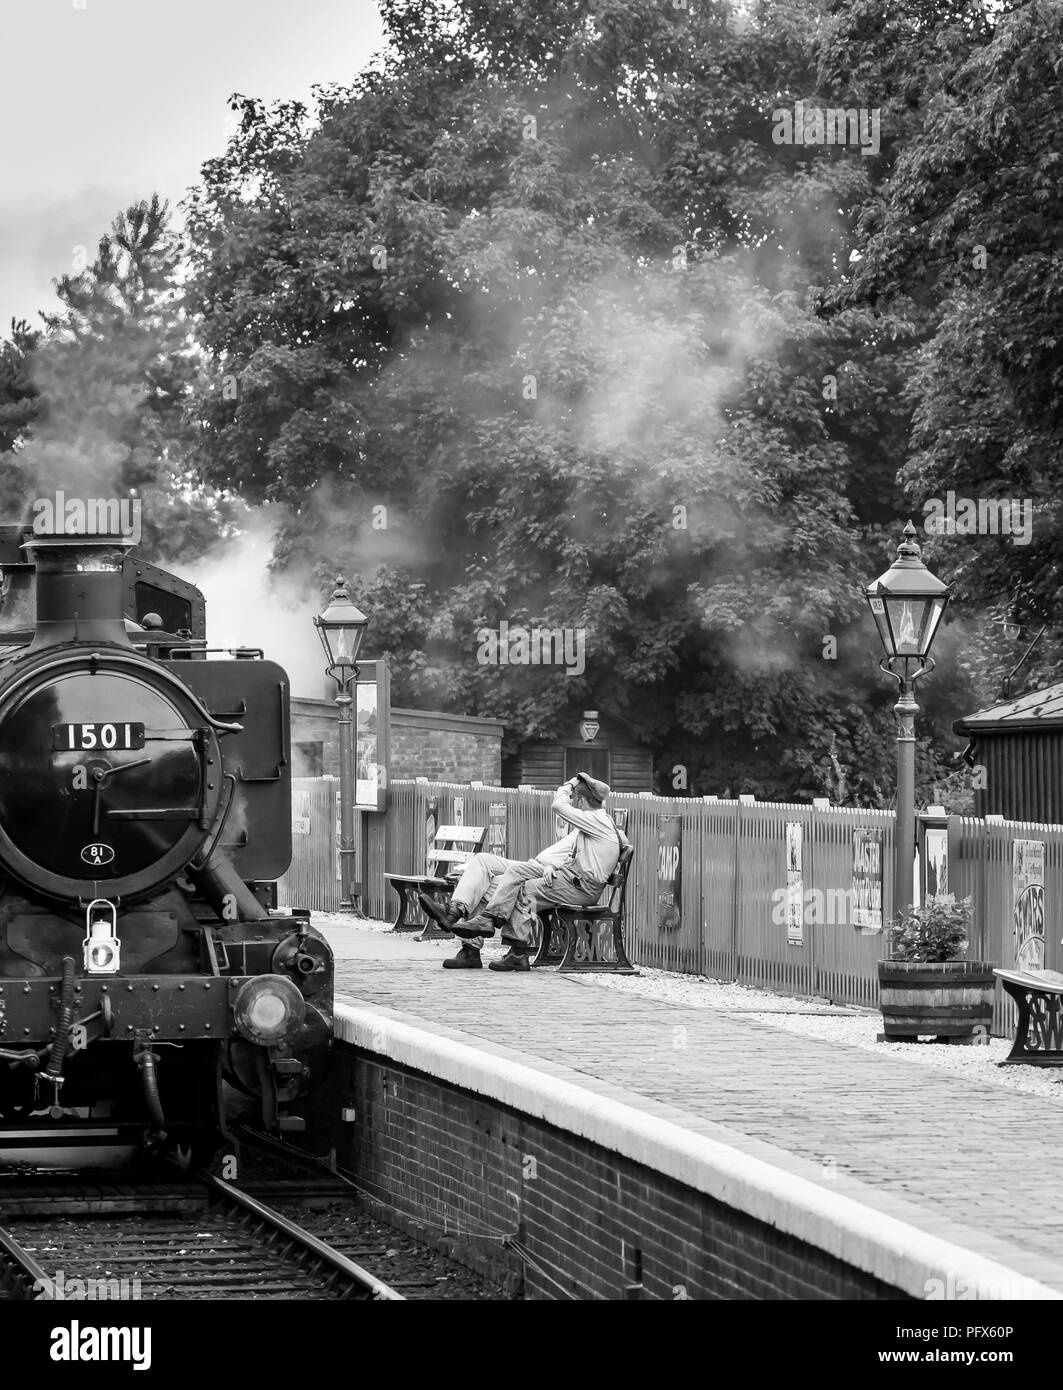 Black & white shot of steam engine crew taking a quick break outside the cab, Severn Valley Railway's Arley station. Front view of loco 1501 steaming. - Stock Image